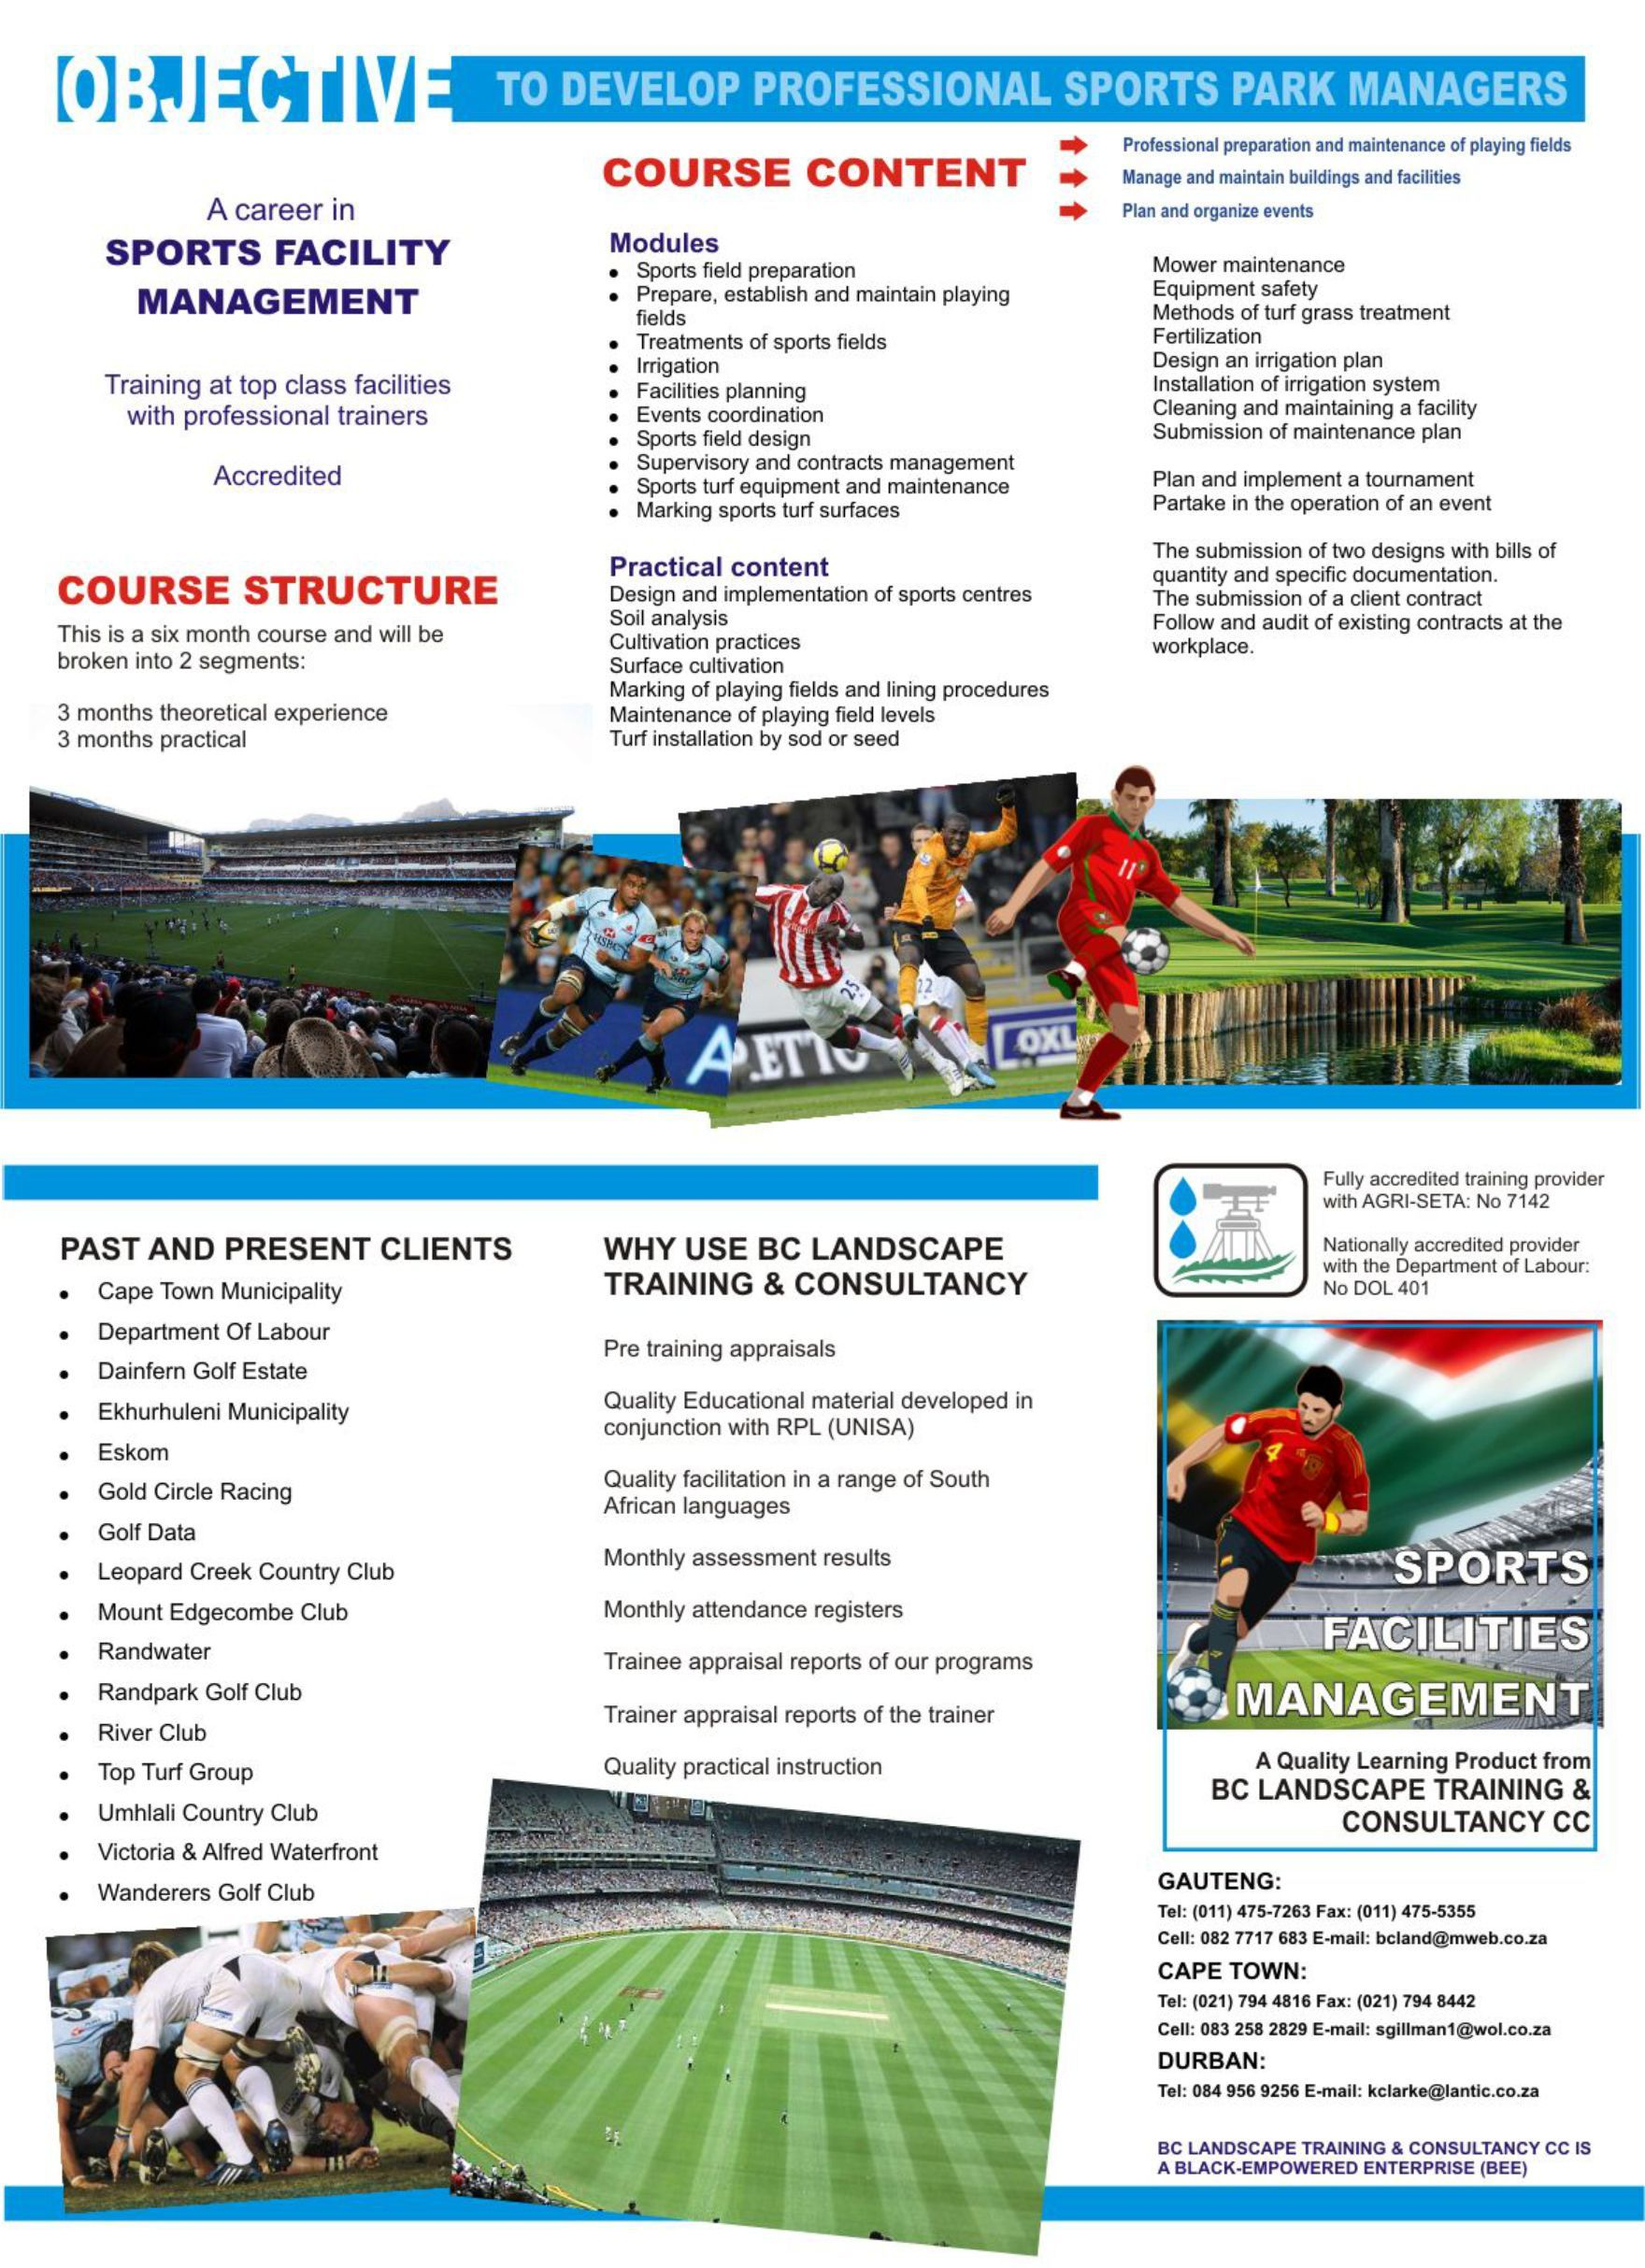 Brochure For Sports Management Course Bc Landscape Training And